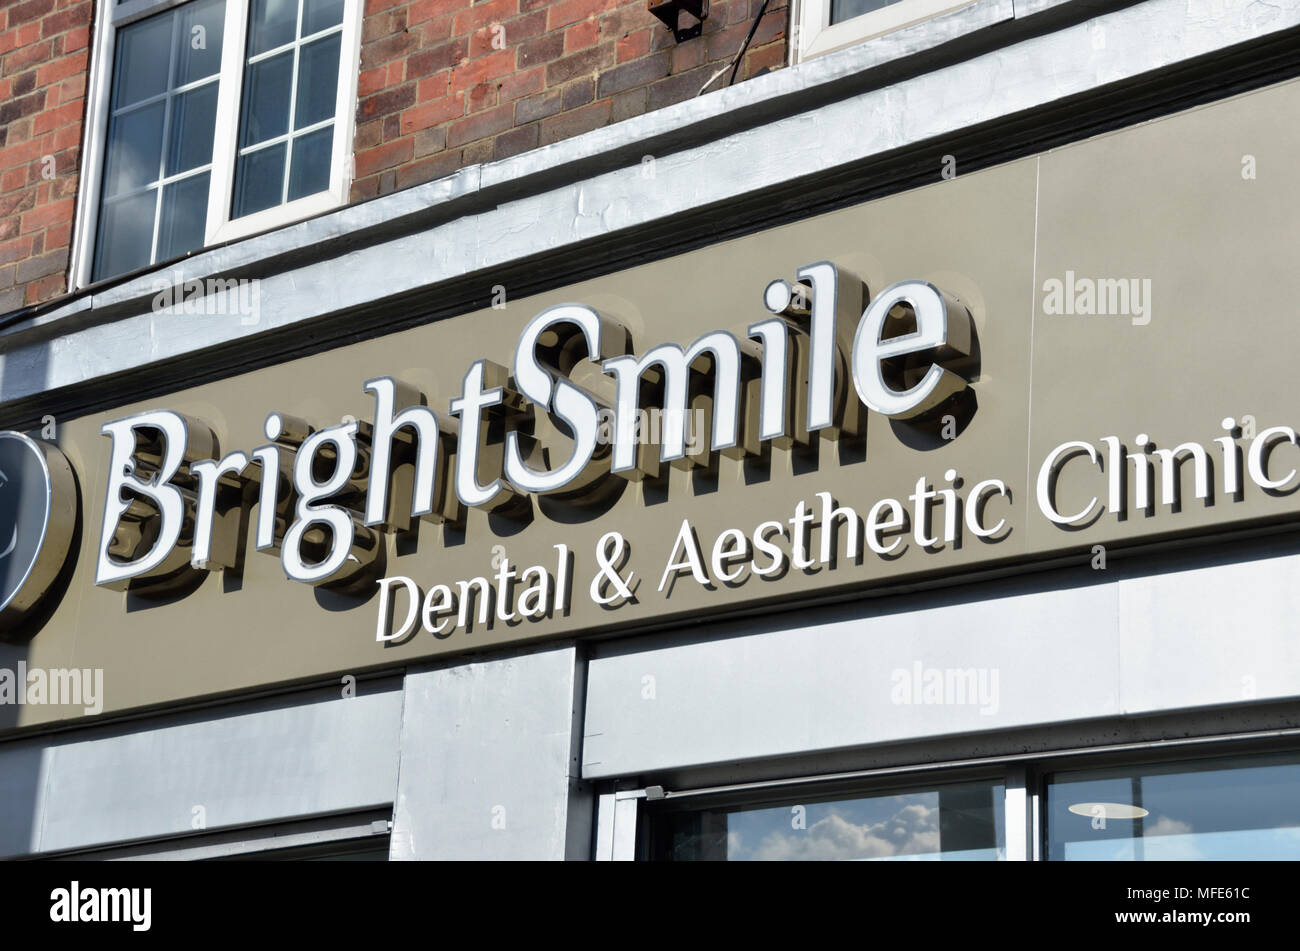 Bright Smile Dental and Aesthetic Clinic in Finchley Road NW3, London, UK. - Stock Image